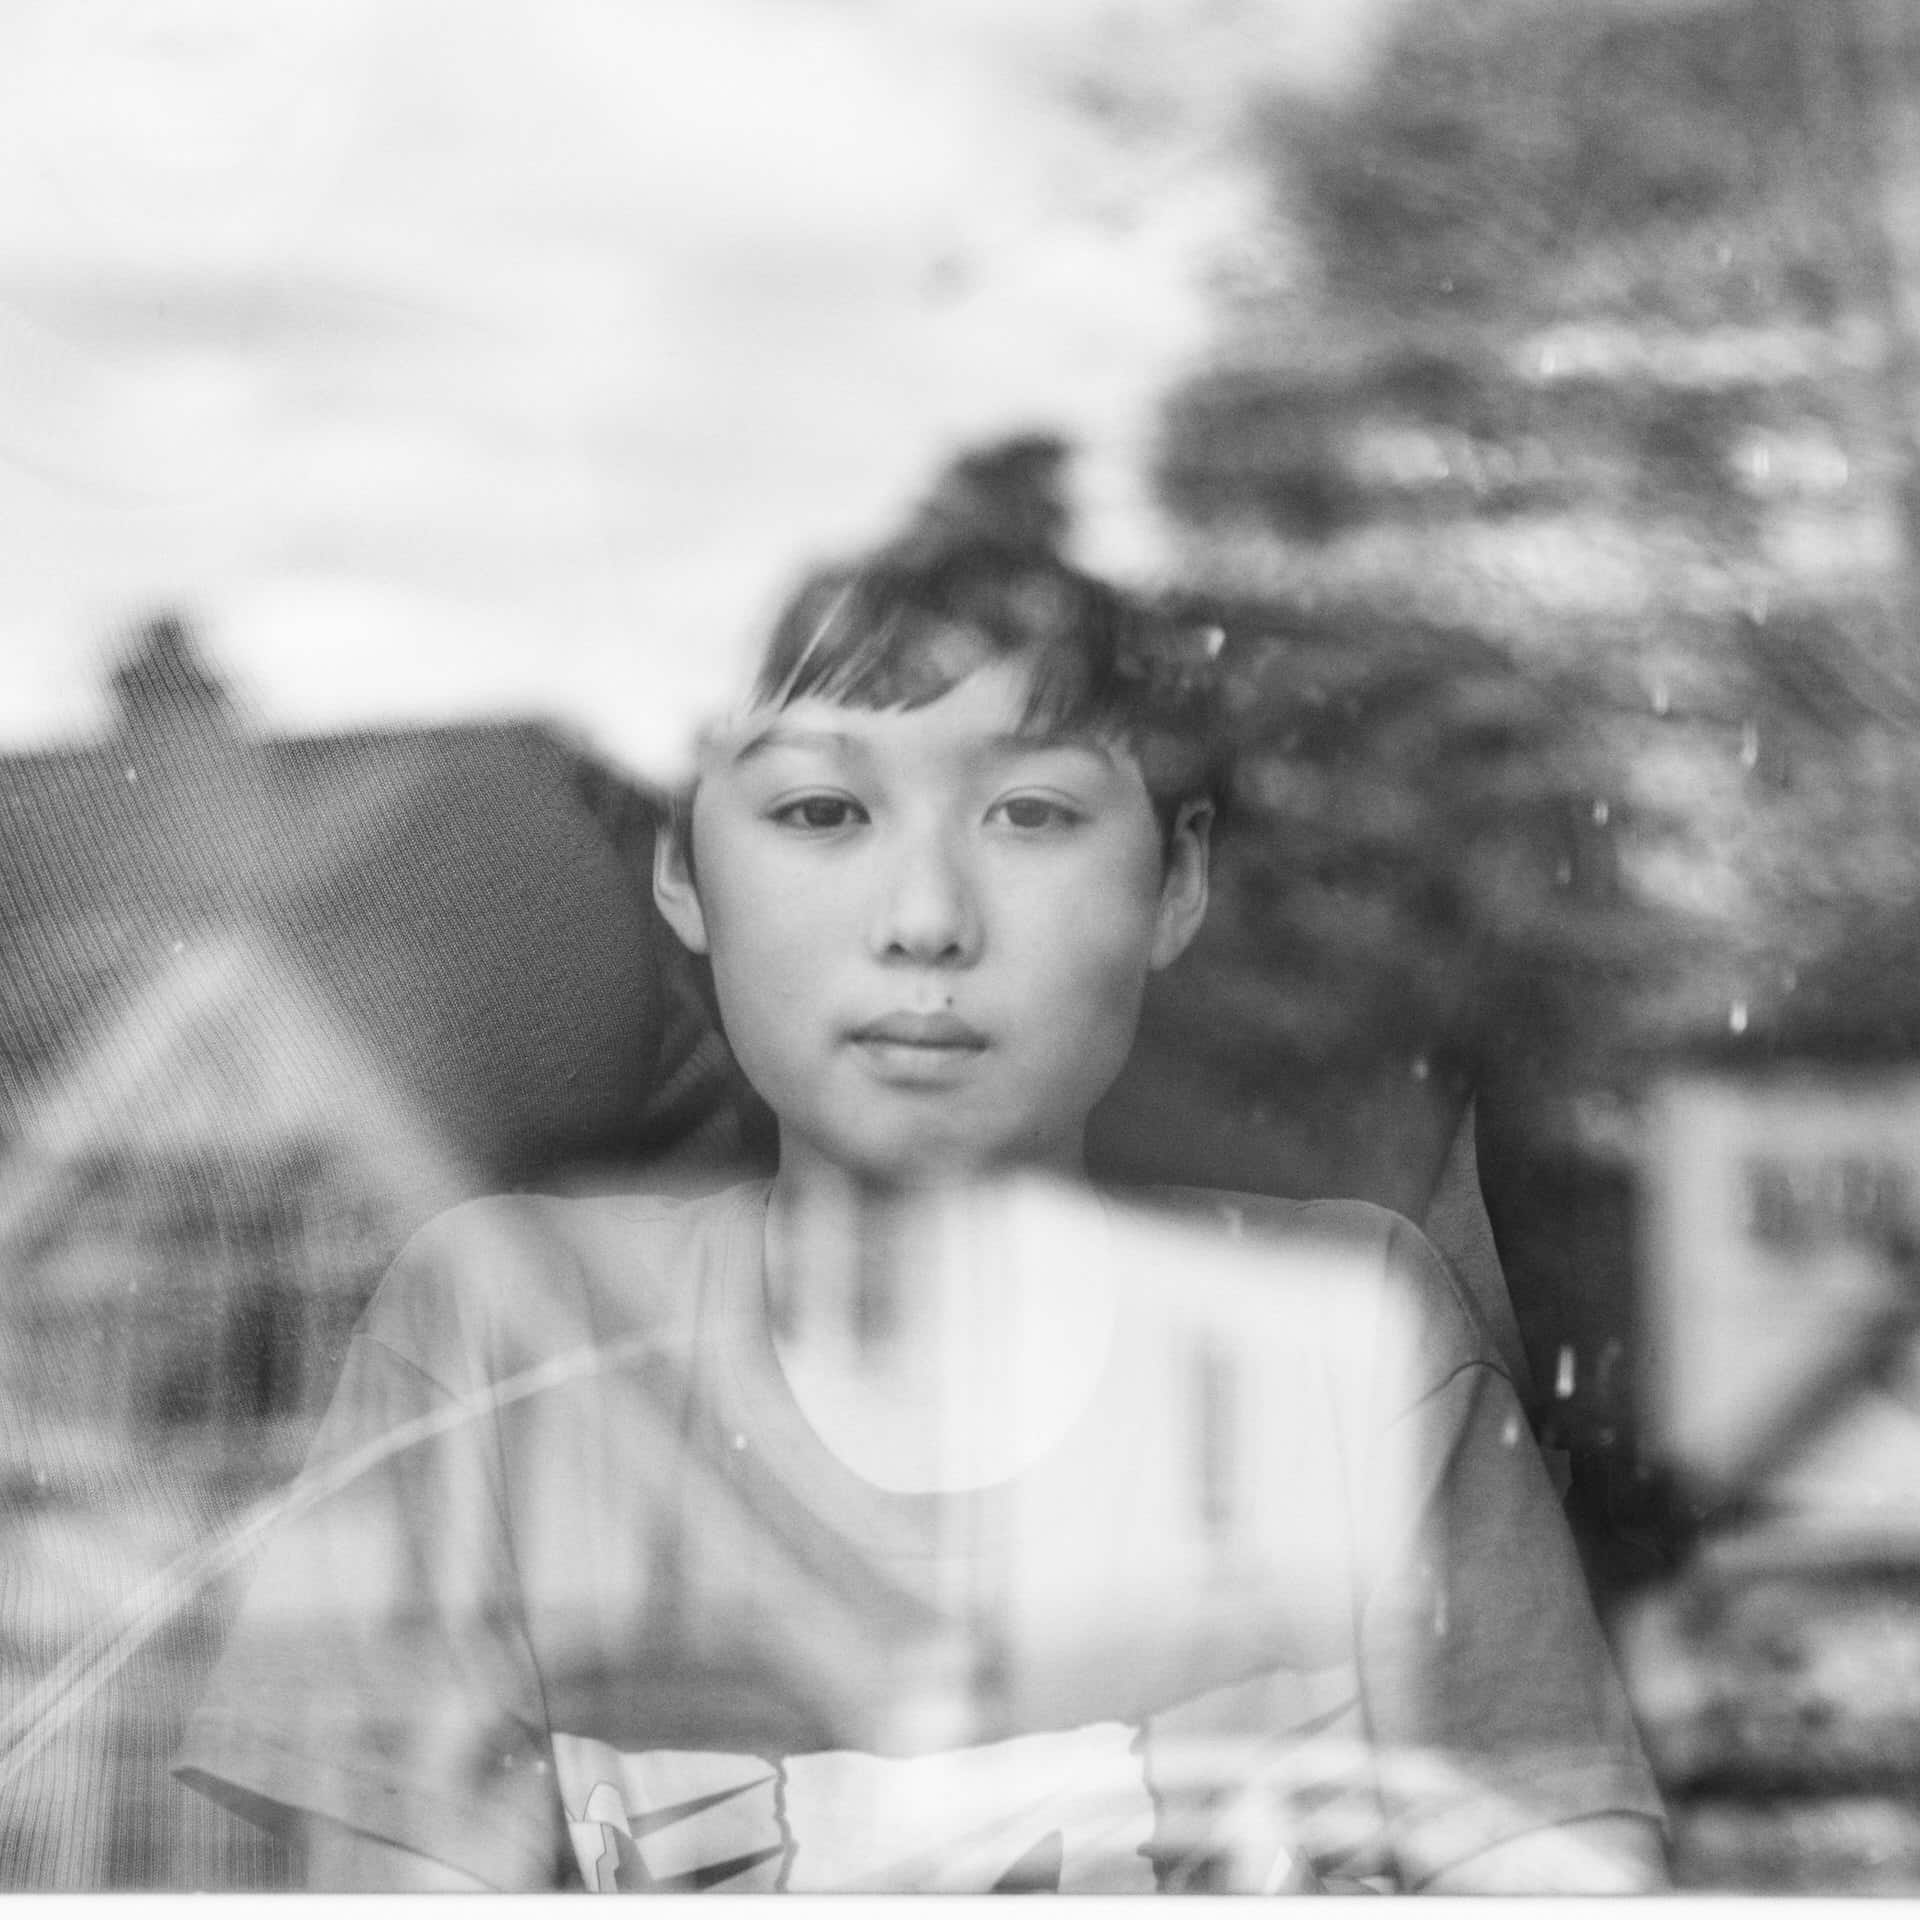 Asian boy behind window with reflections from outside during Corona Virus